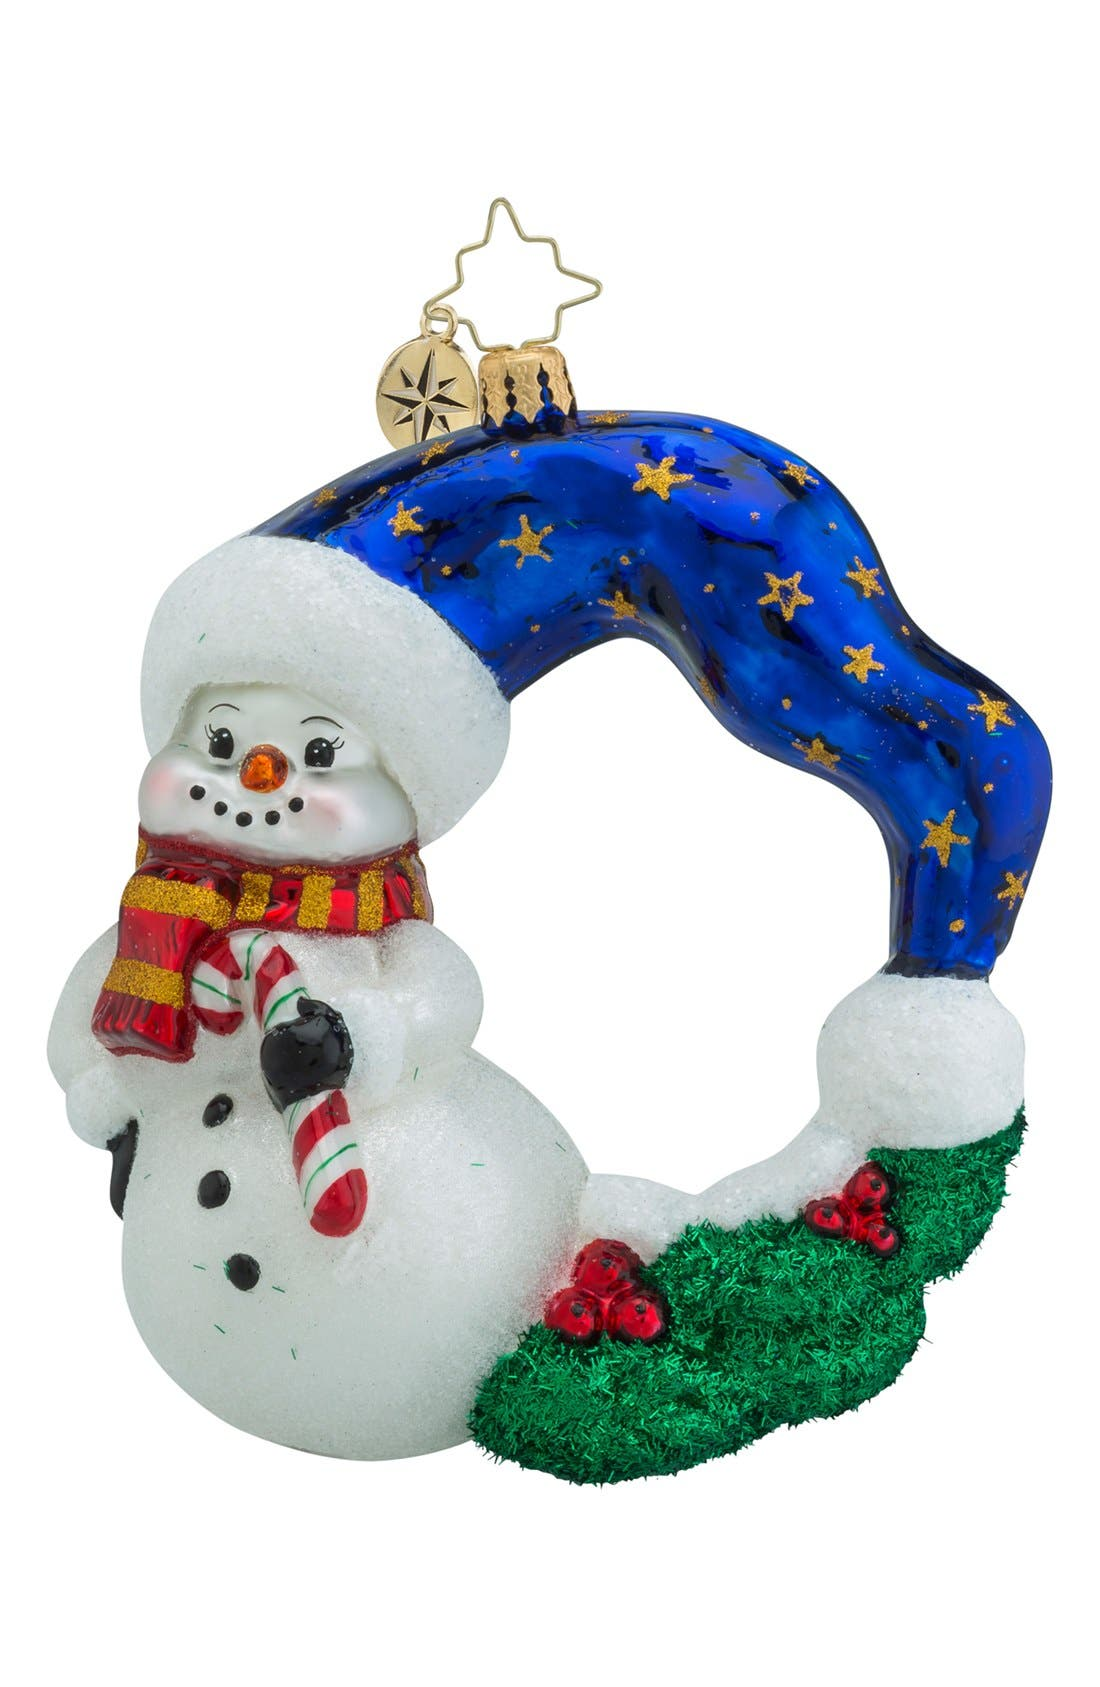 Alternate Image 1 Selected - Christopher Radko 'Cool Chaplet' Snowman Wreath Ornament